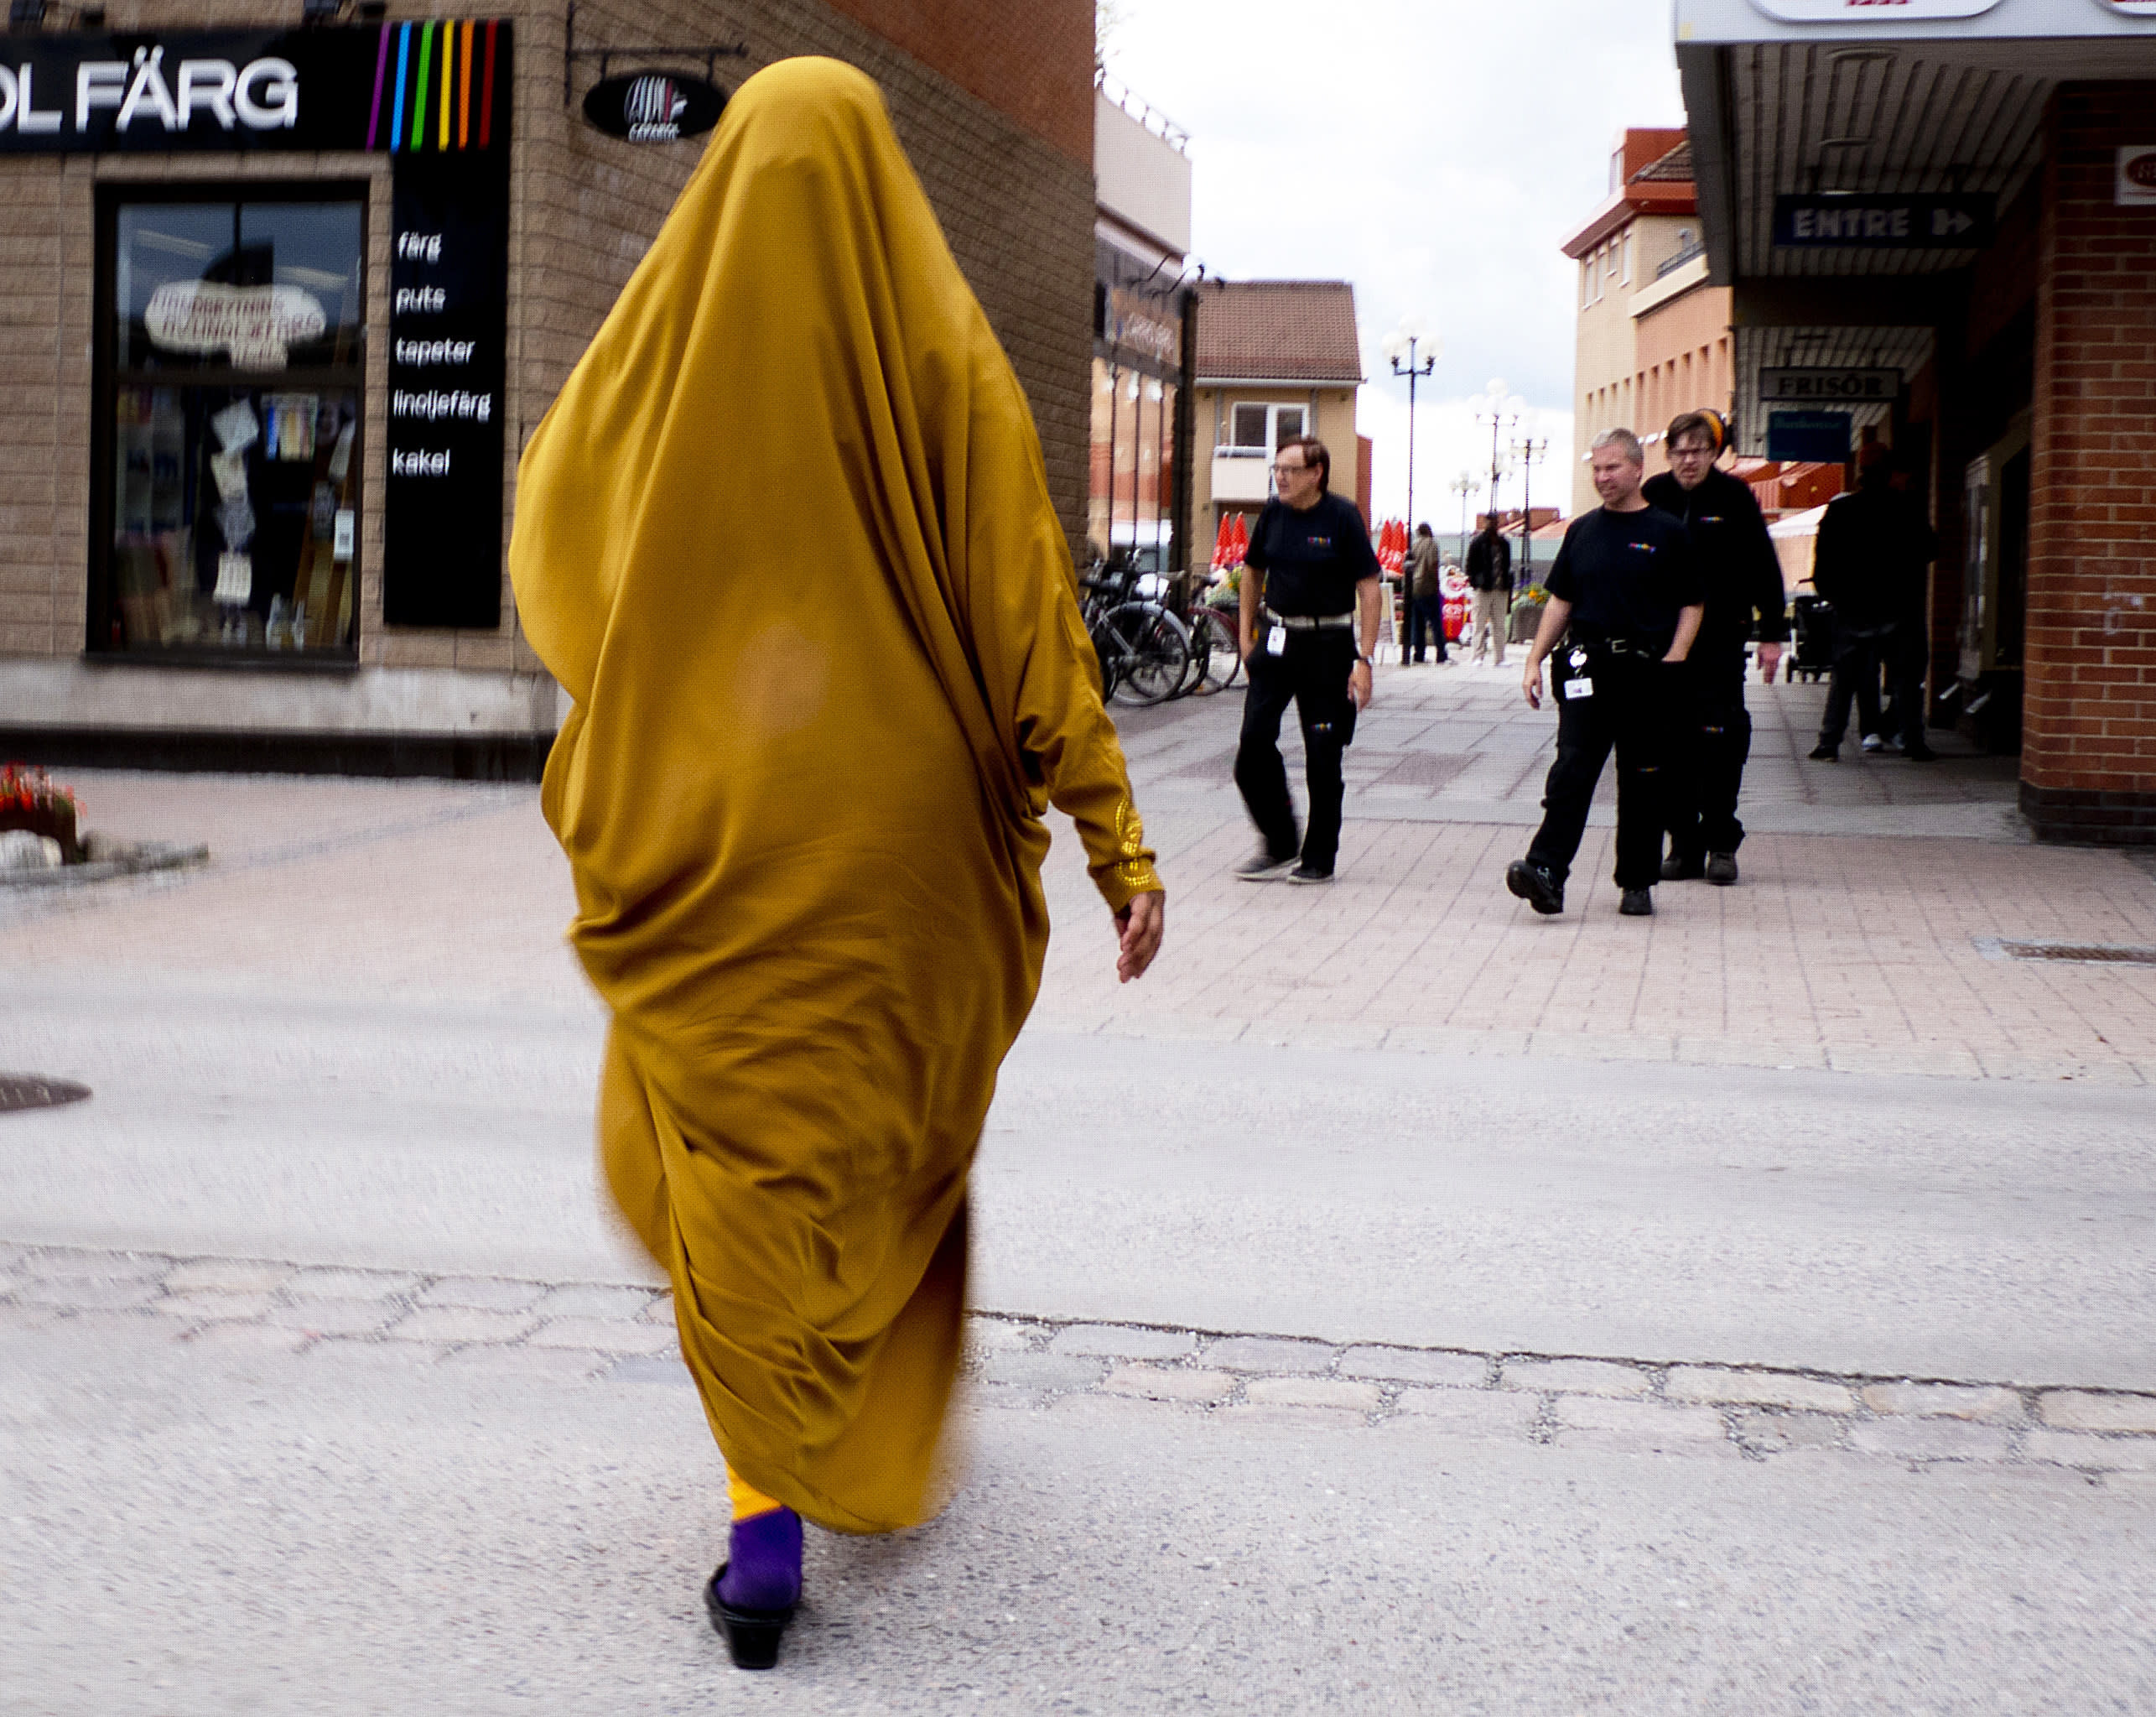 In this Aug. 30, 2018 photo a migrant from Somalia walks through downtown Flen, some 100 km west of Stockholm, Sweden. The town has welcomed so many asylum seekers in recent years that they now make up about a fourth of the population. (AP Photo/Michael Probst)